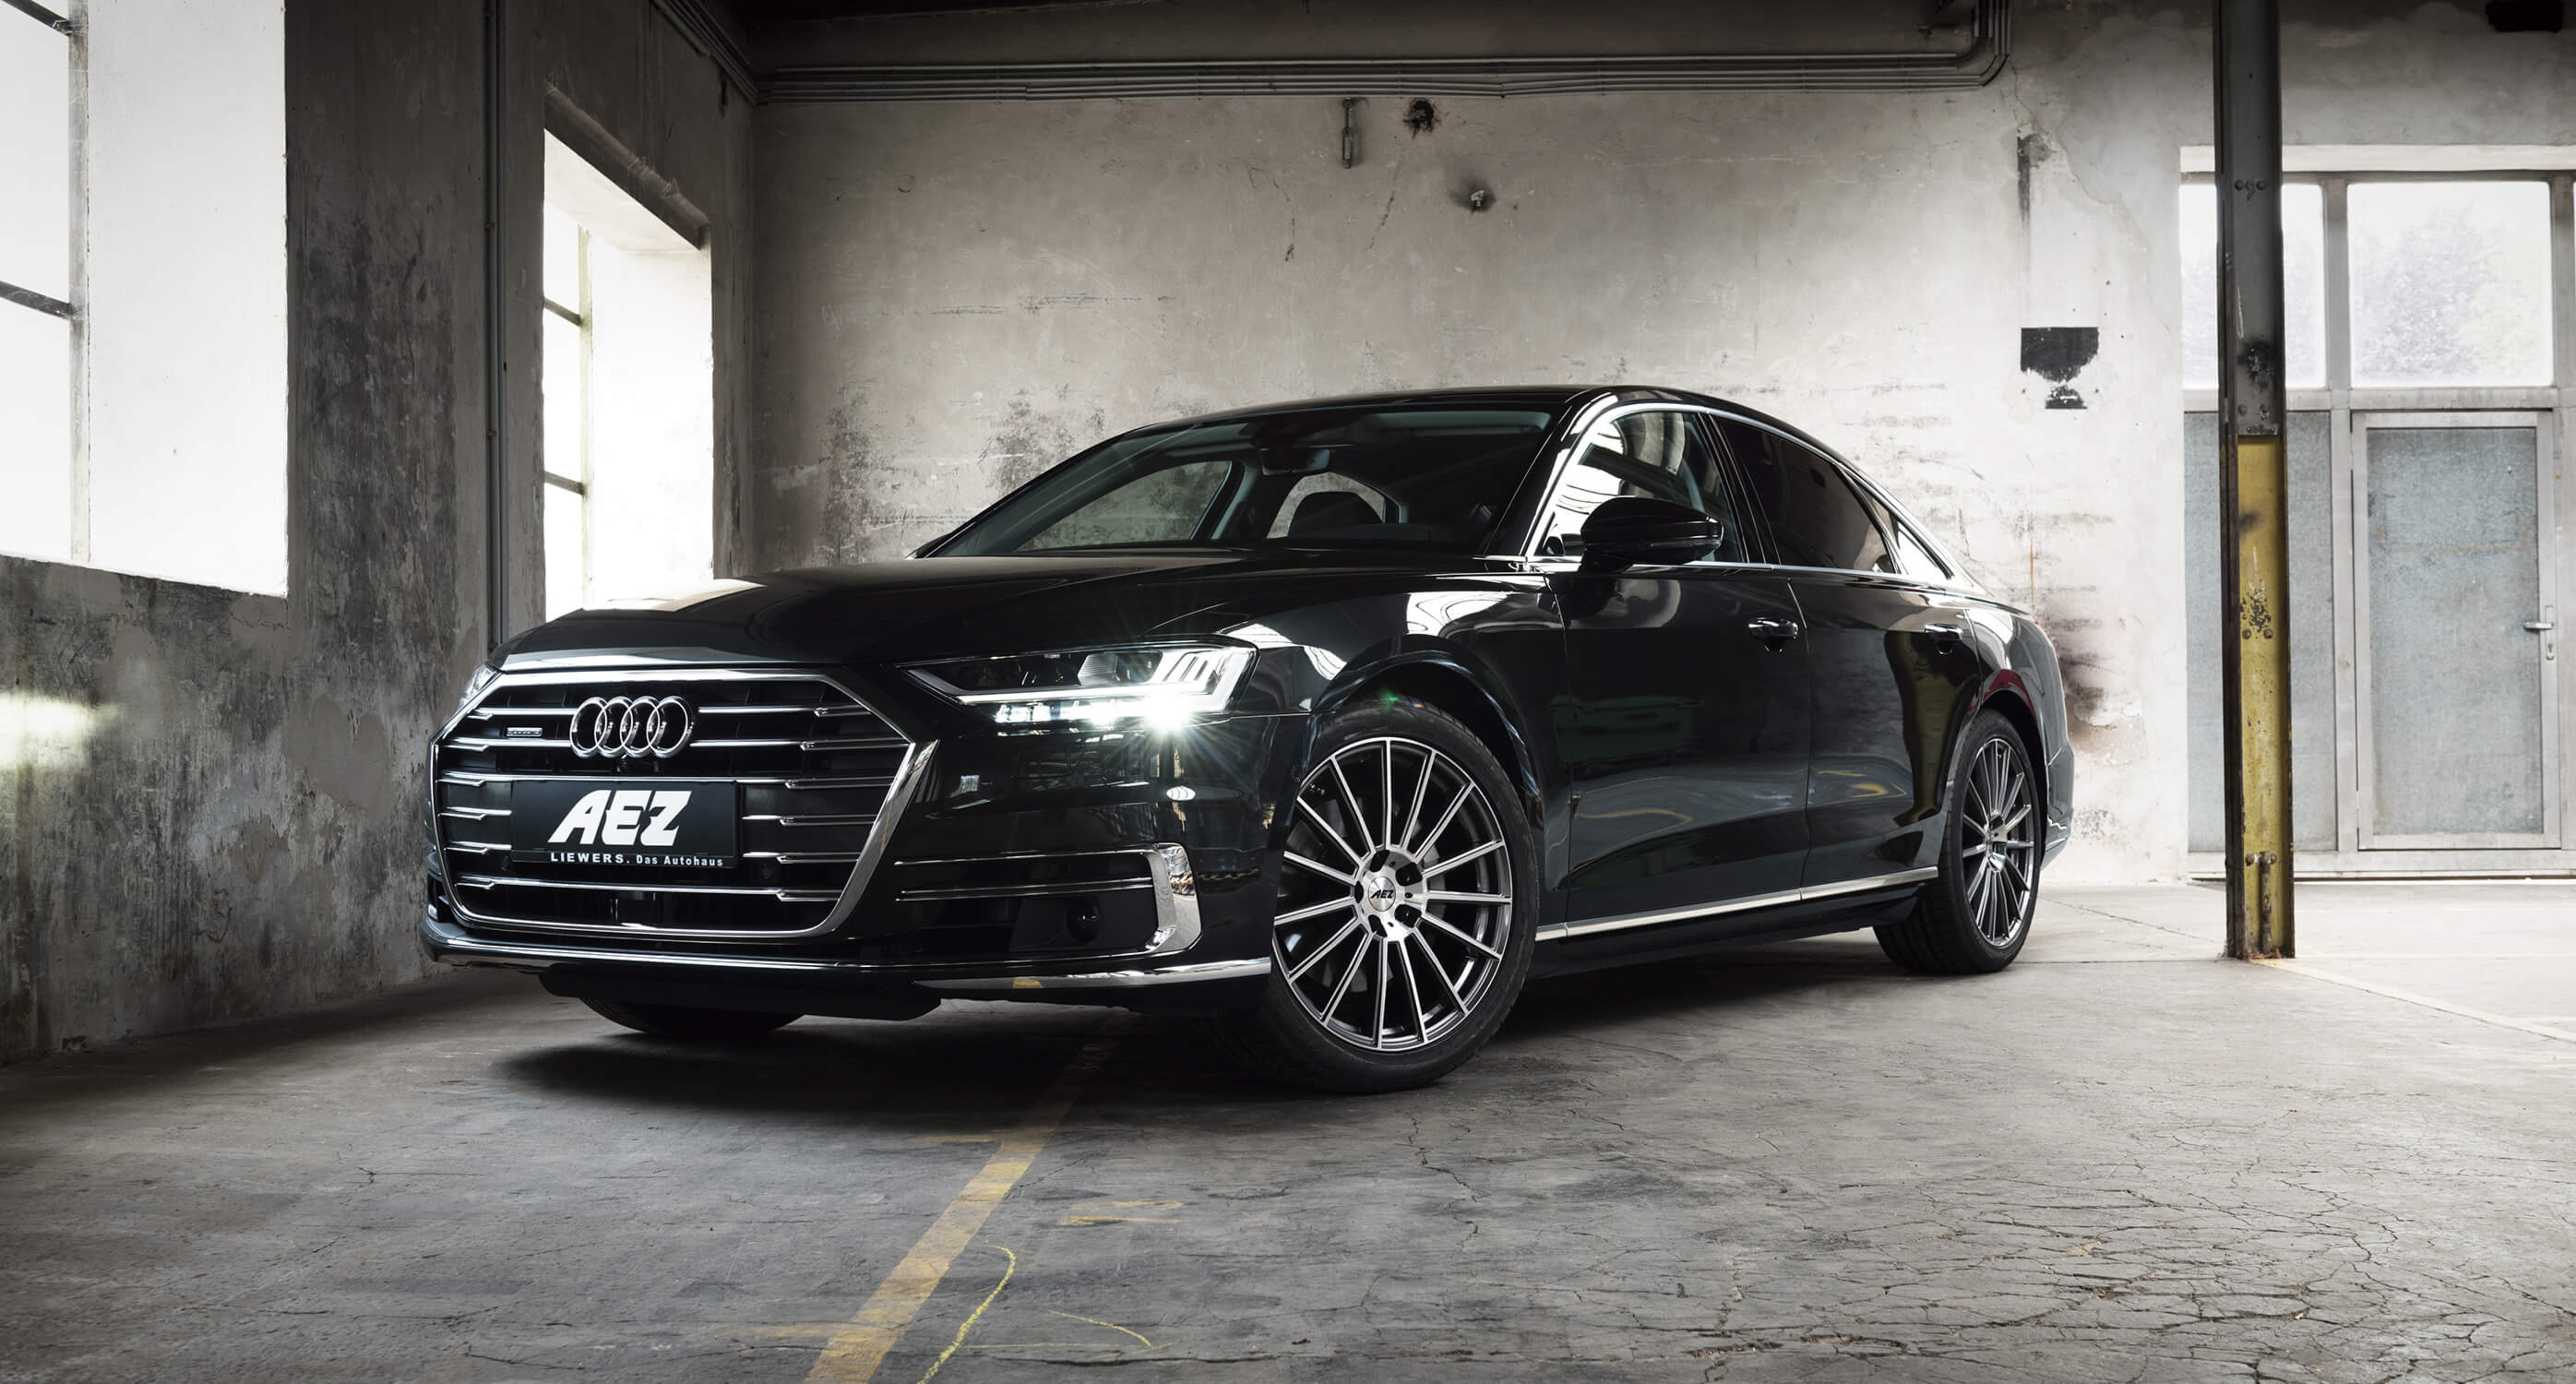 The new Audi A8 on AEZ Steam